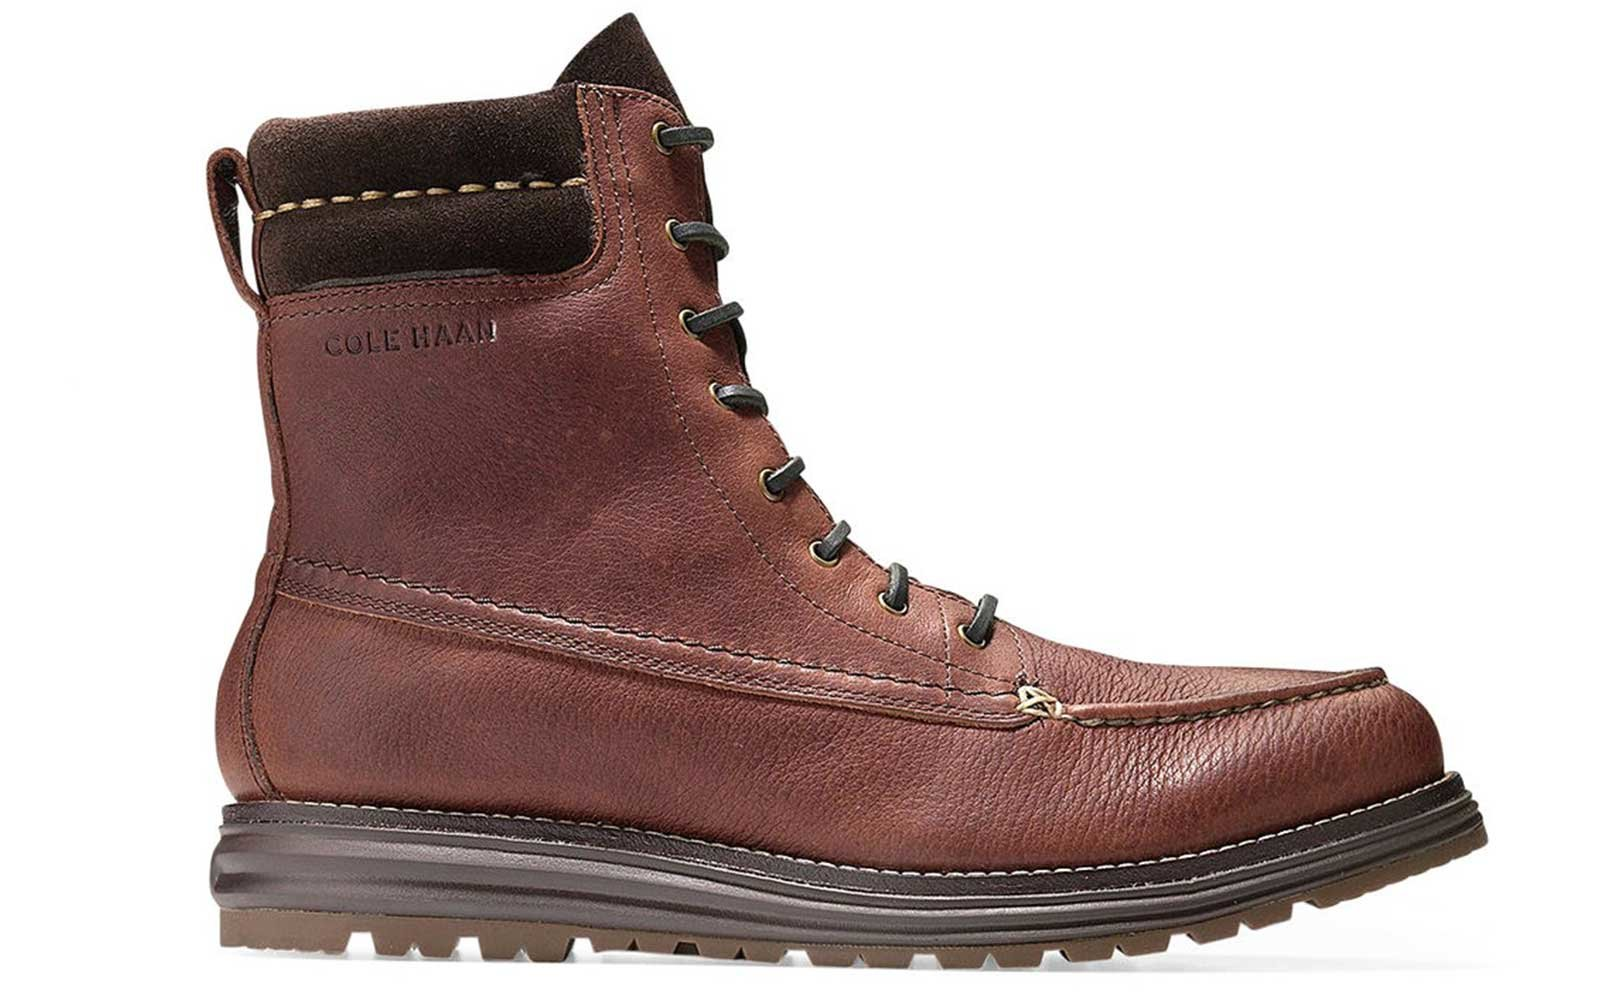 cole haan shoes greenville sc weather 10 day forecast 716887